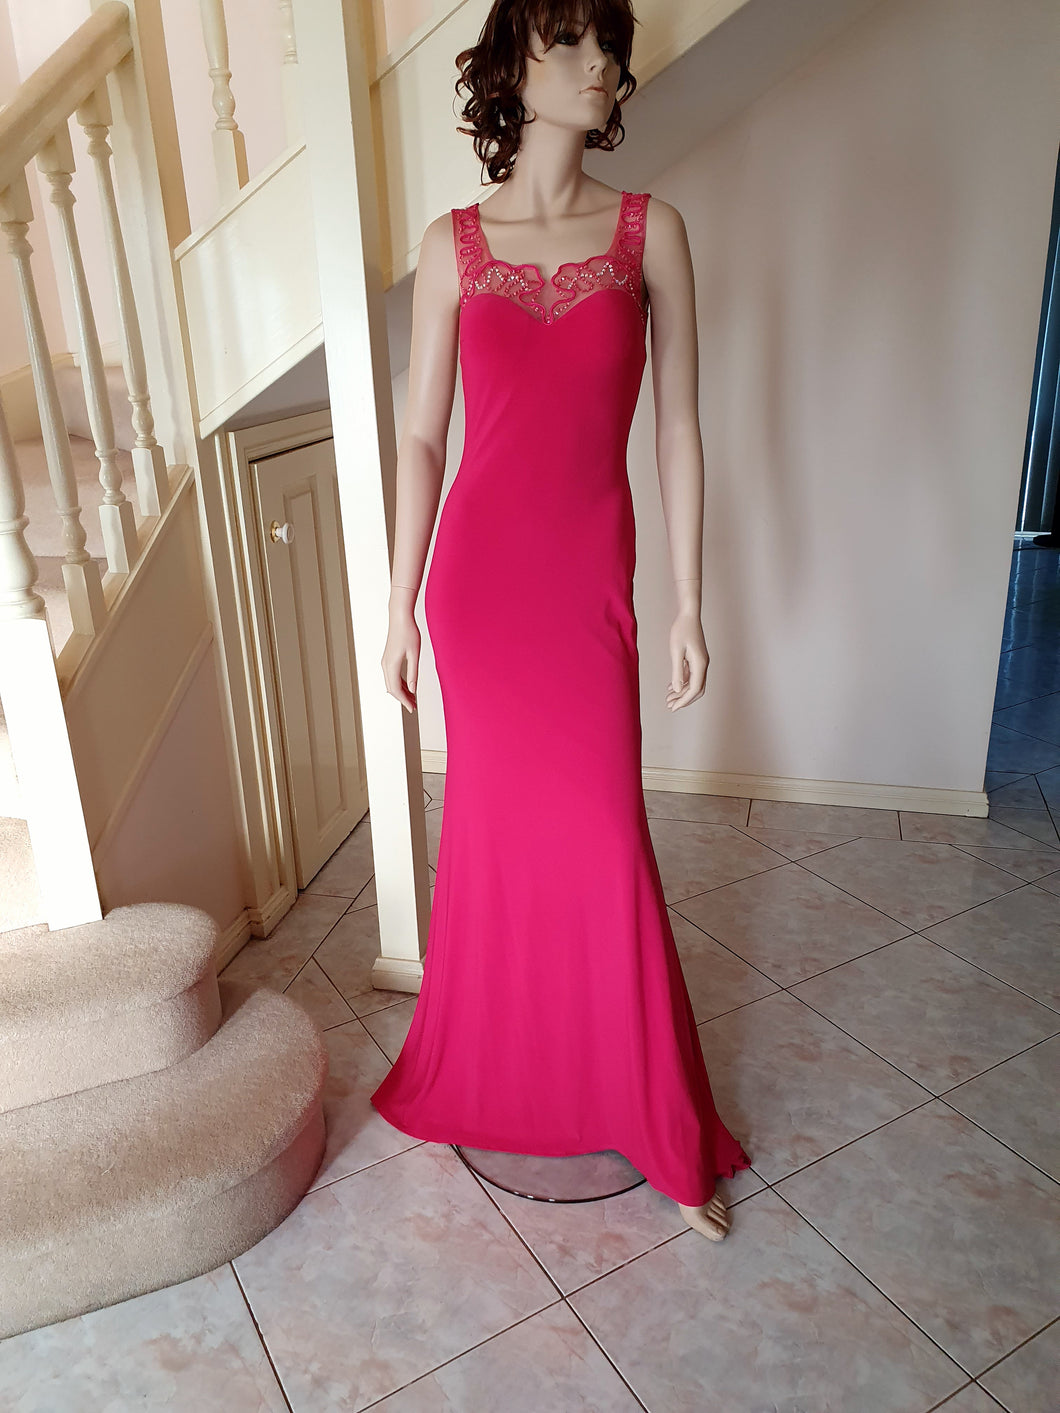 Square Neckline Gown in Fuchsia Style 2201 by Miracle Agency